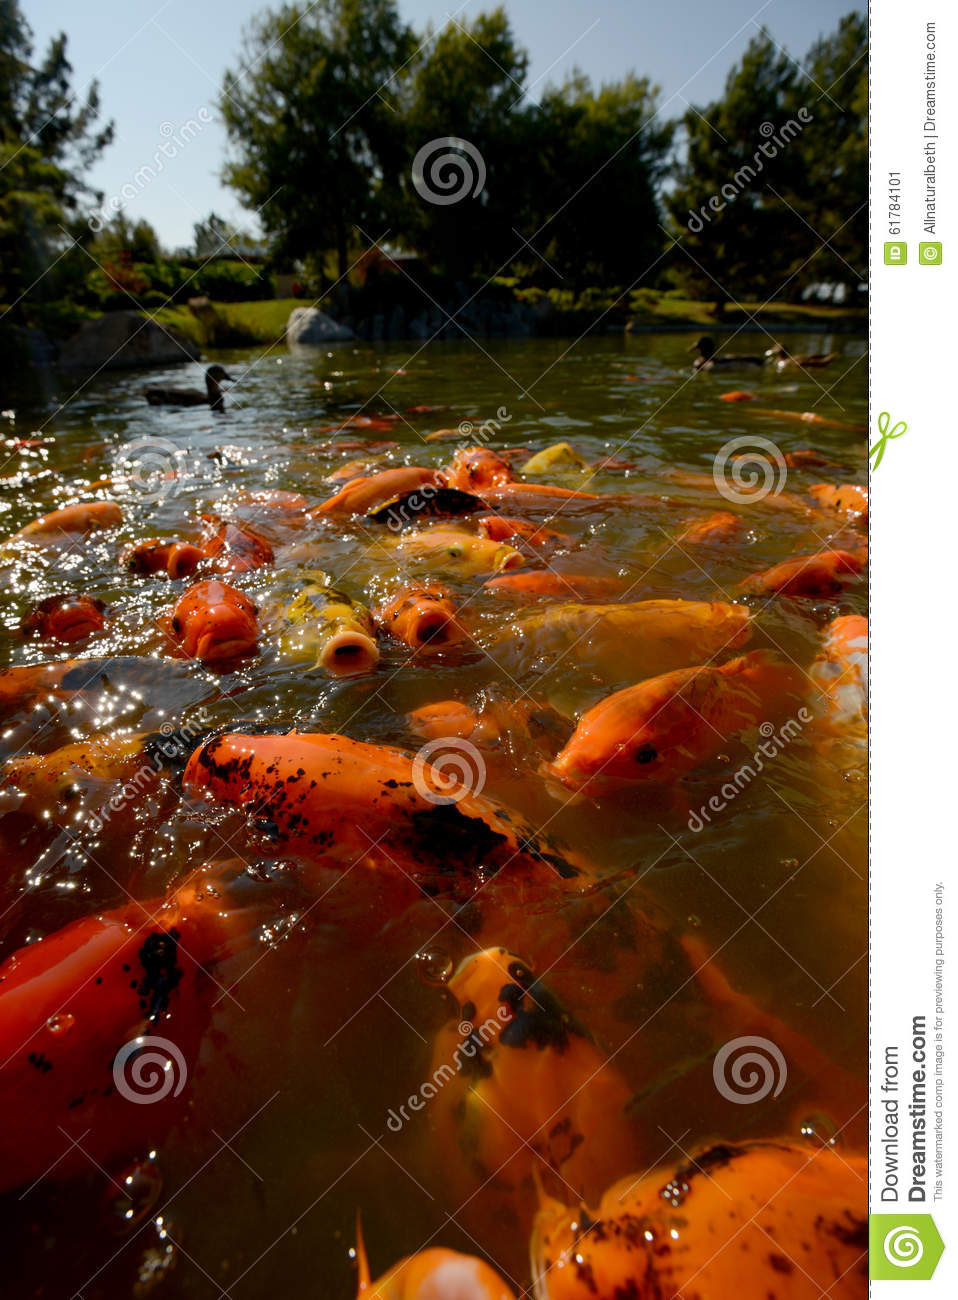 Koi Fish In A Zen Pond For Tranquil Nature Setting Stock